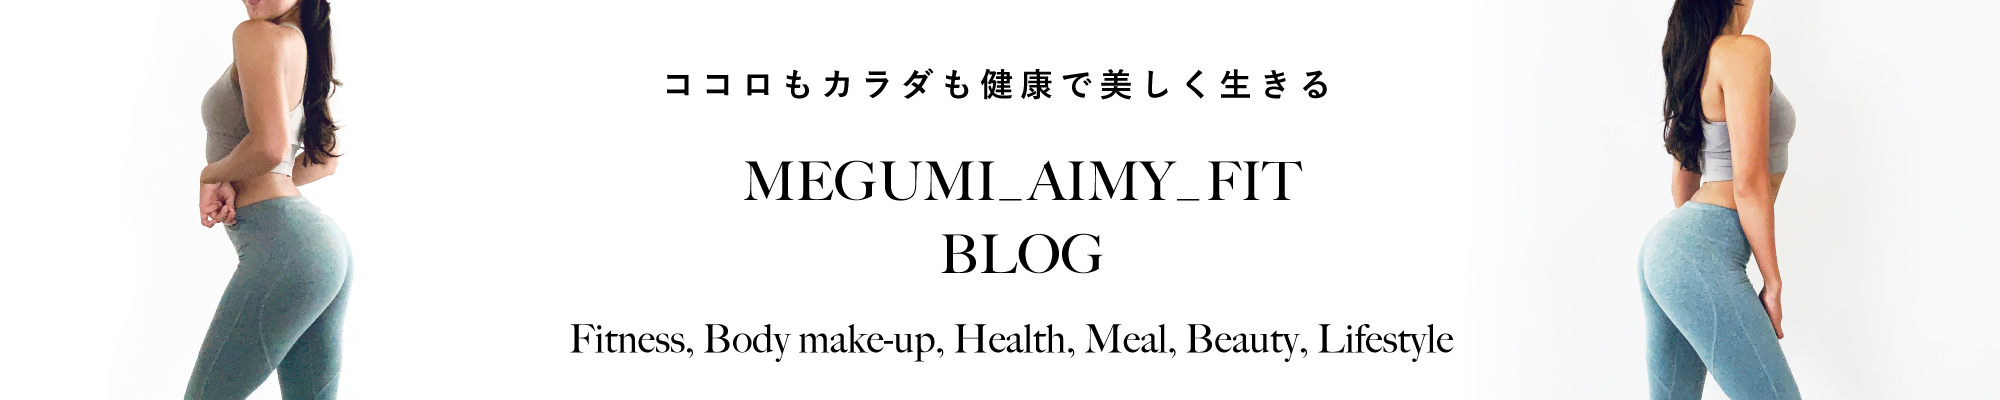 megumi aimy fit blog